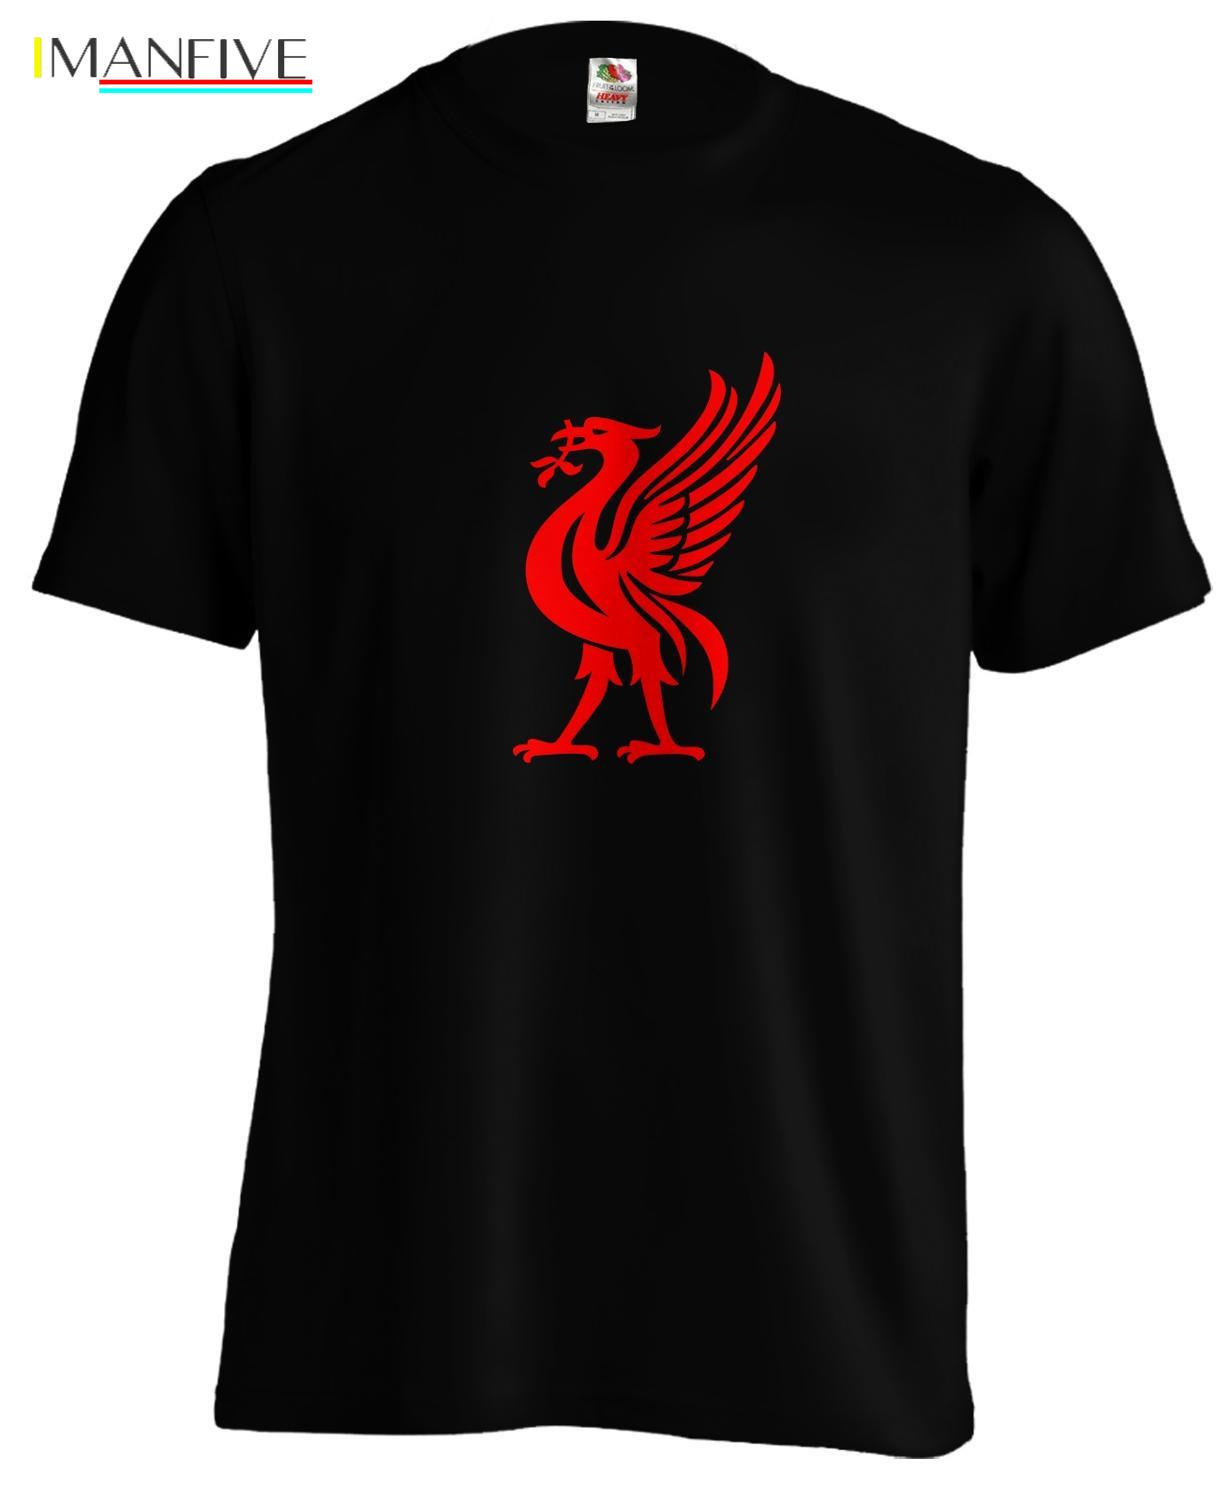 Liverpool Liver Bird Football T Shirt Tee 2019 New Fashion O Neck Slim Fit Tops Skate T Shirt in T Shirts from Men 39 s Clothing